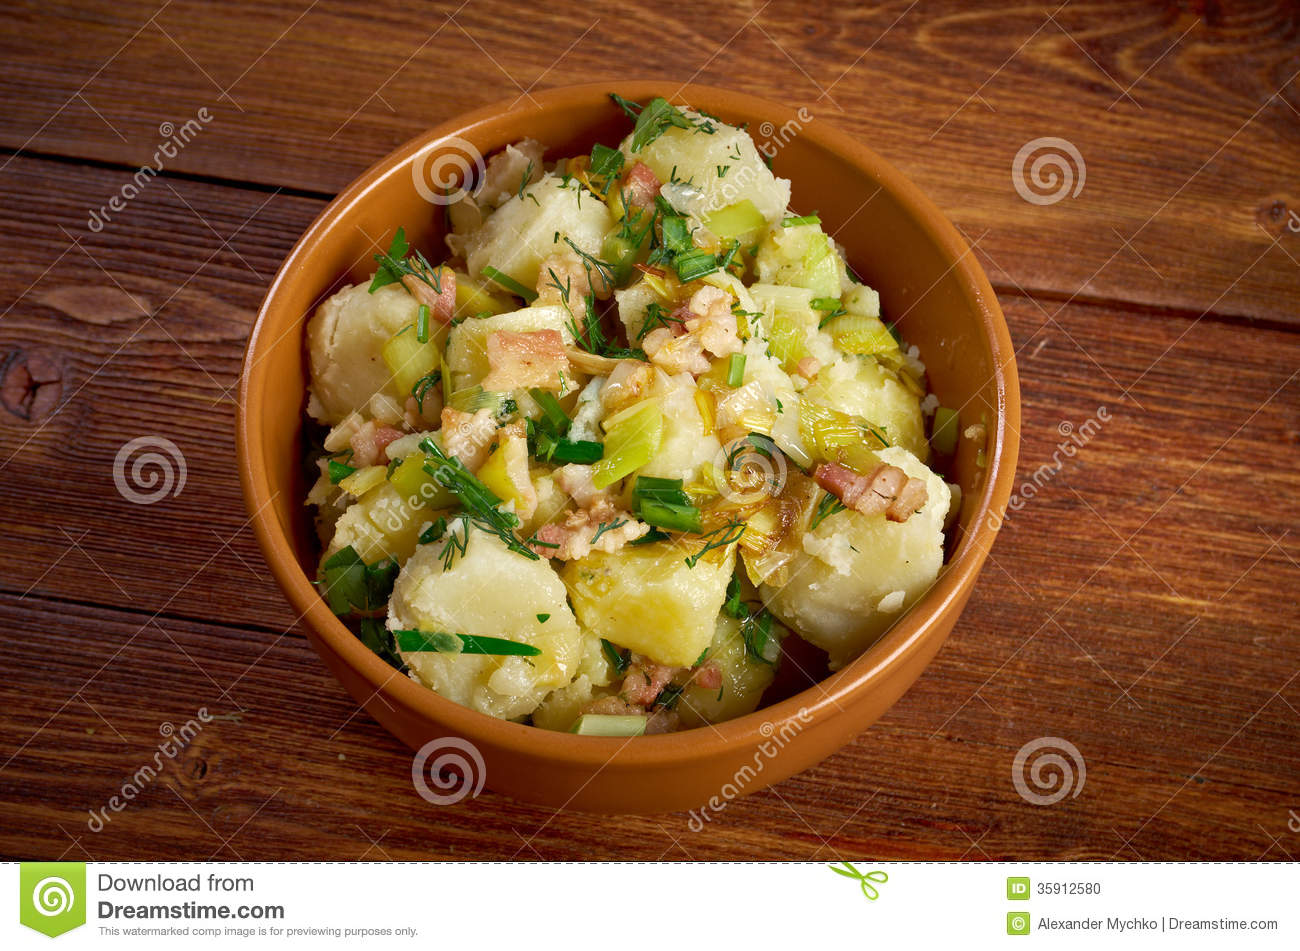 Luisa's German Potato Salad (Kartoffelsalat) Recipe — Dishmaps